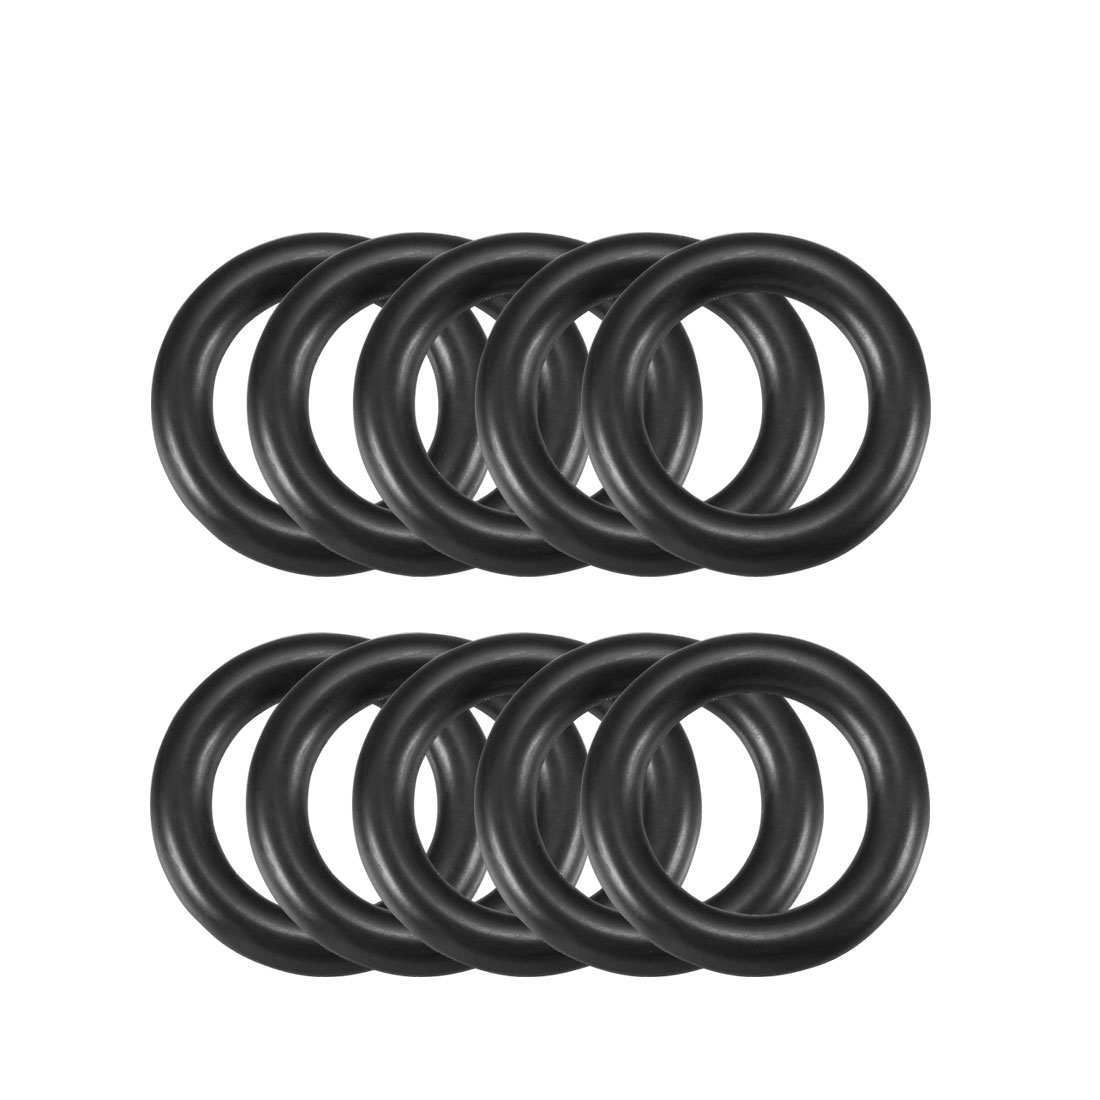 4mm x 22mm Black Nitrile Rubber Sealing O Ring Seal Washer Grommets 10 Pcs